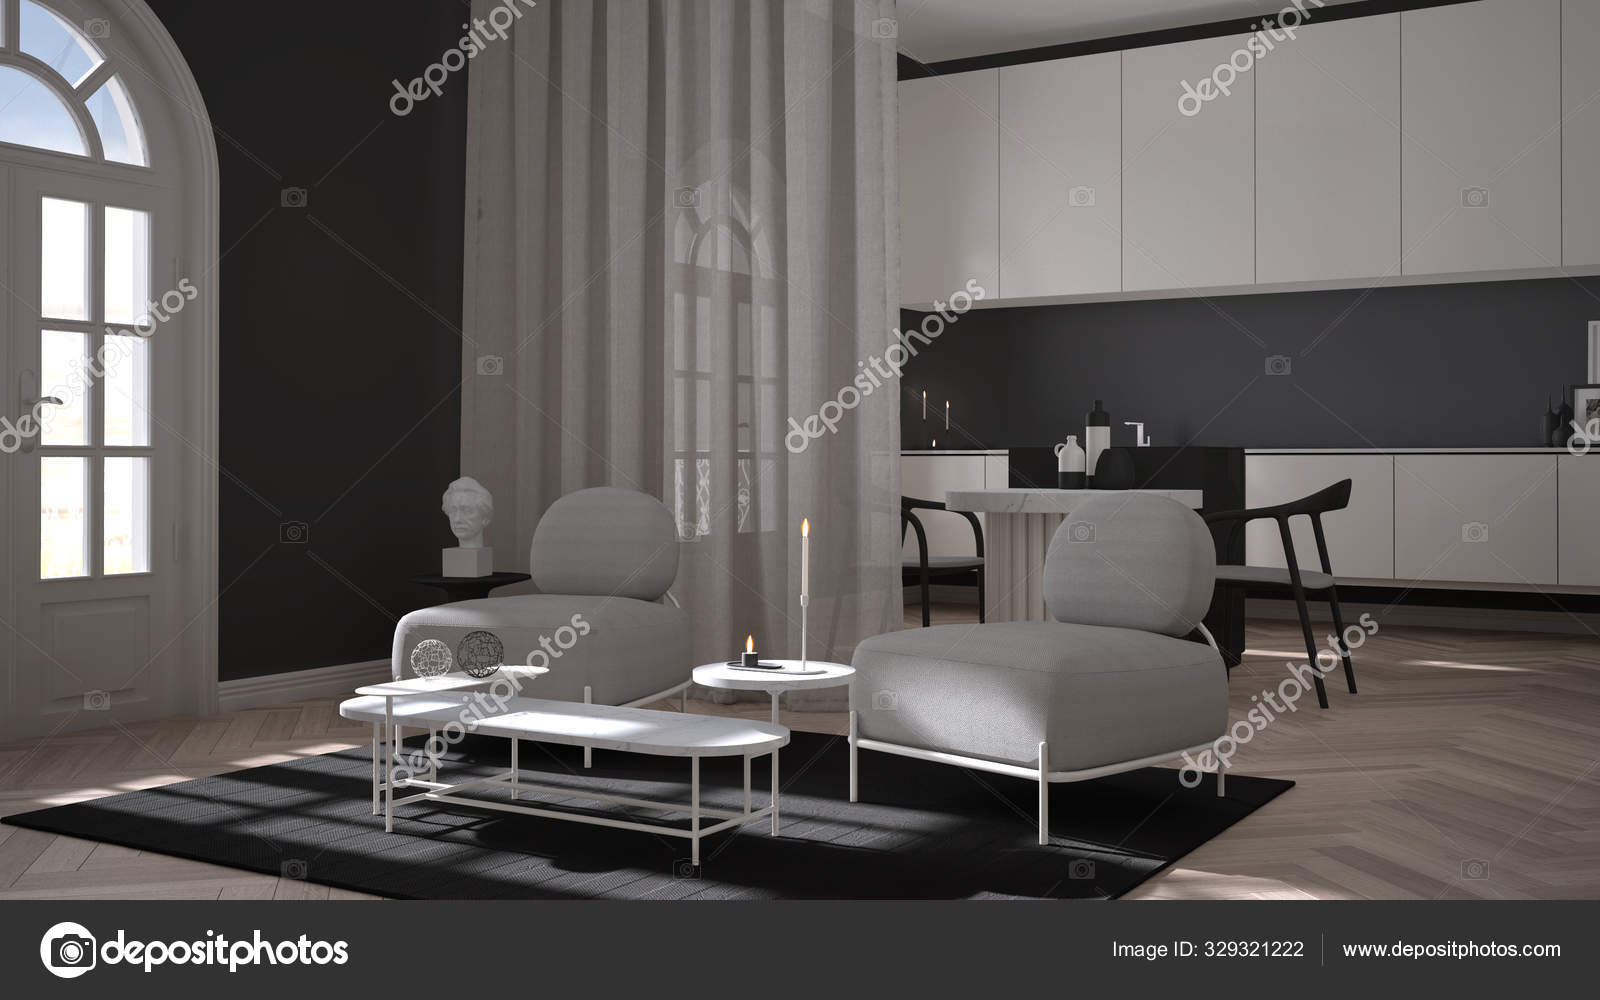 Luxury Lounge Living Room And Kitchen In Classic Room With Stucco Molded Walls And Parquet Floor